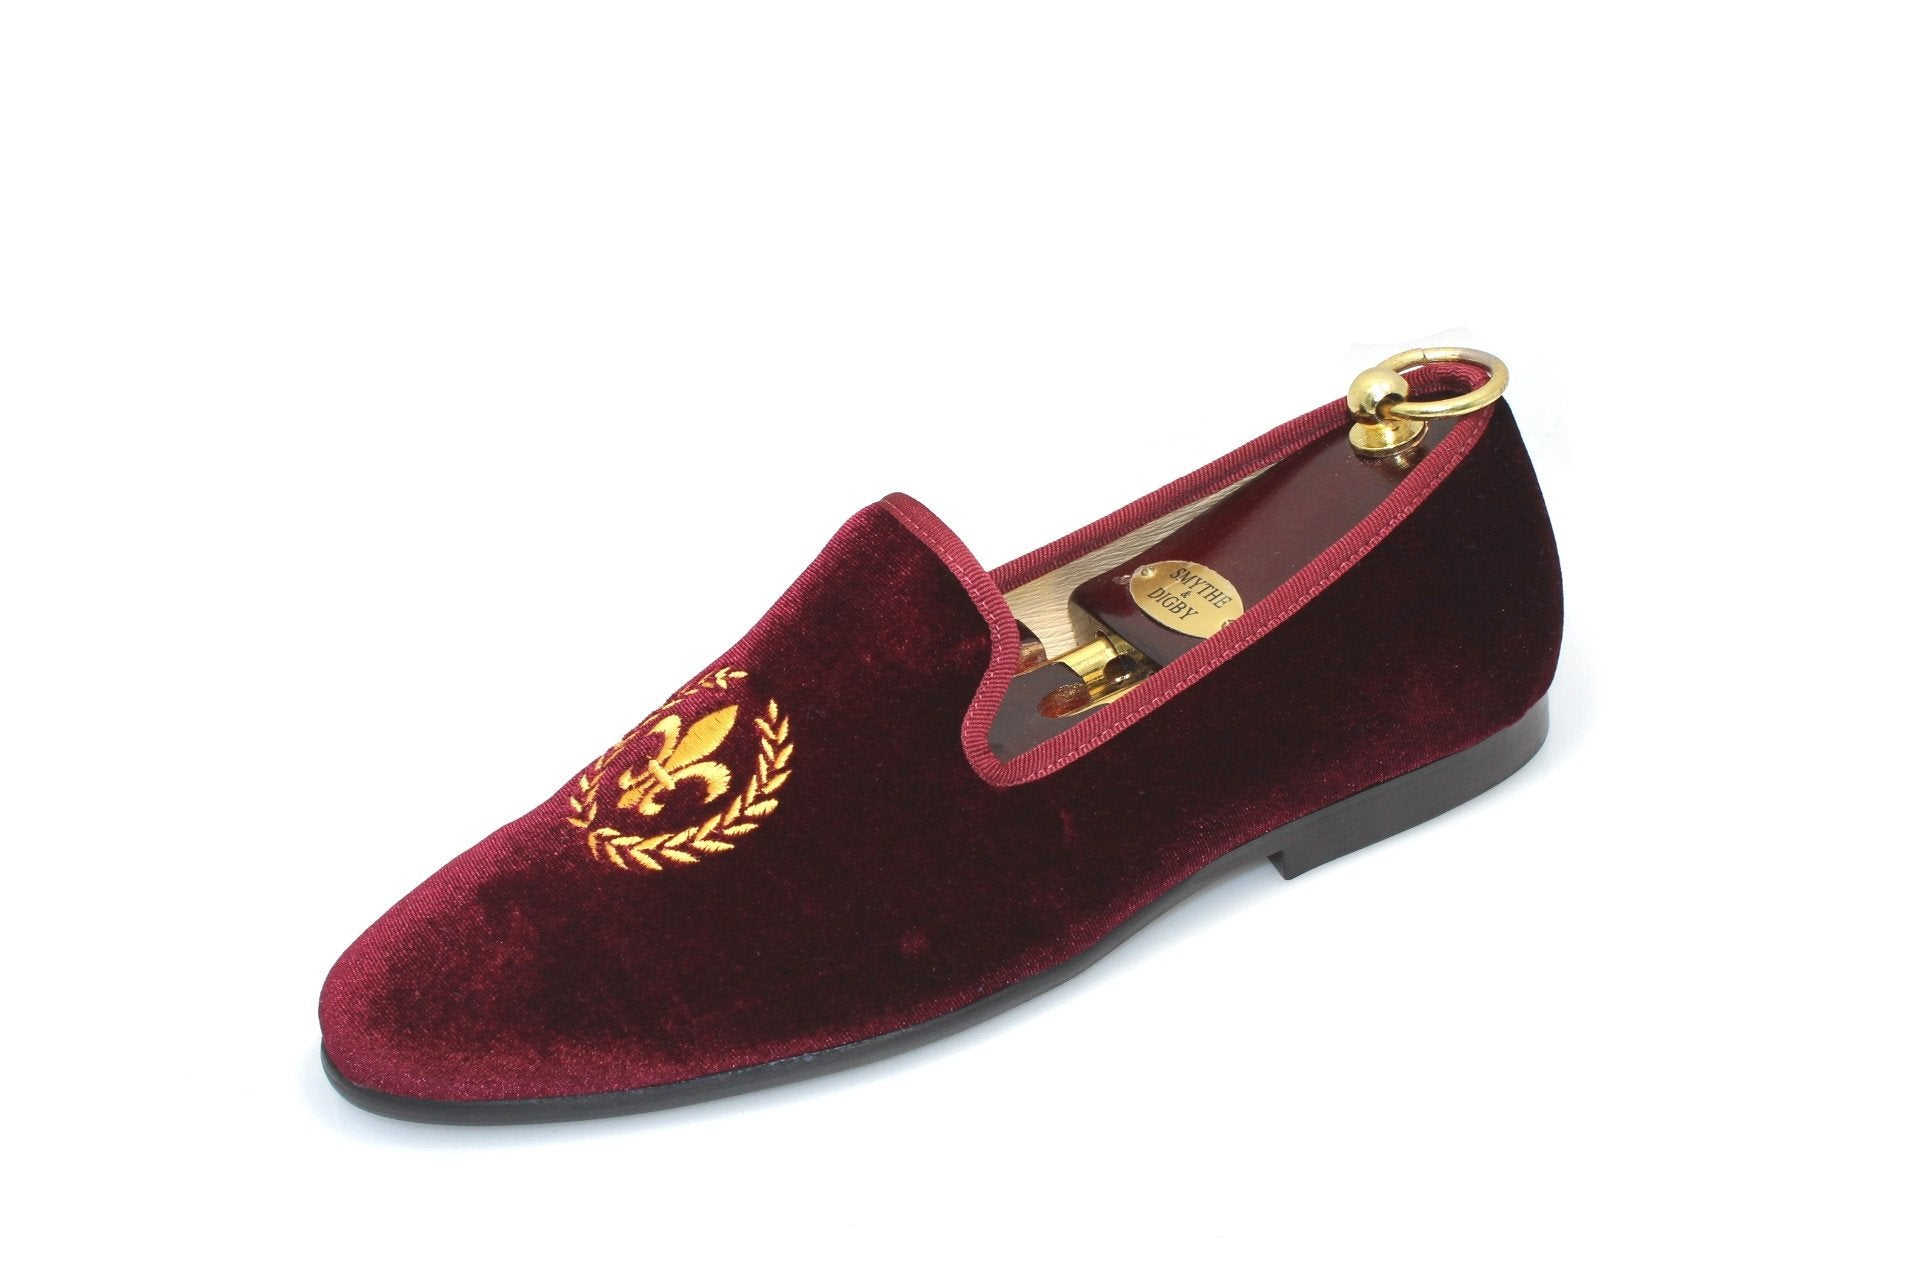 f7908f8ee112c Smythe & Digby Men's Albert Slippers Fleur de Lis Embroidered Burgundy  Velvet Loafers